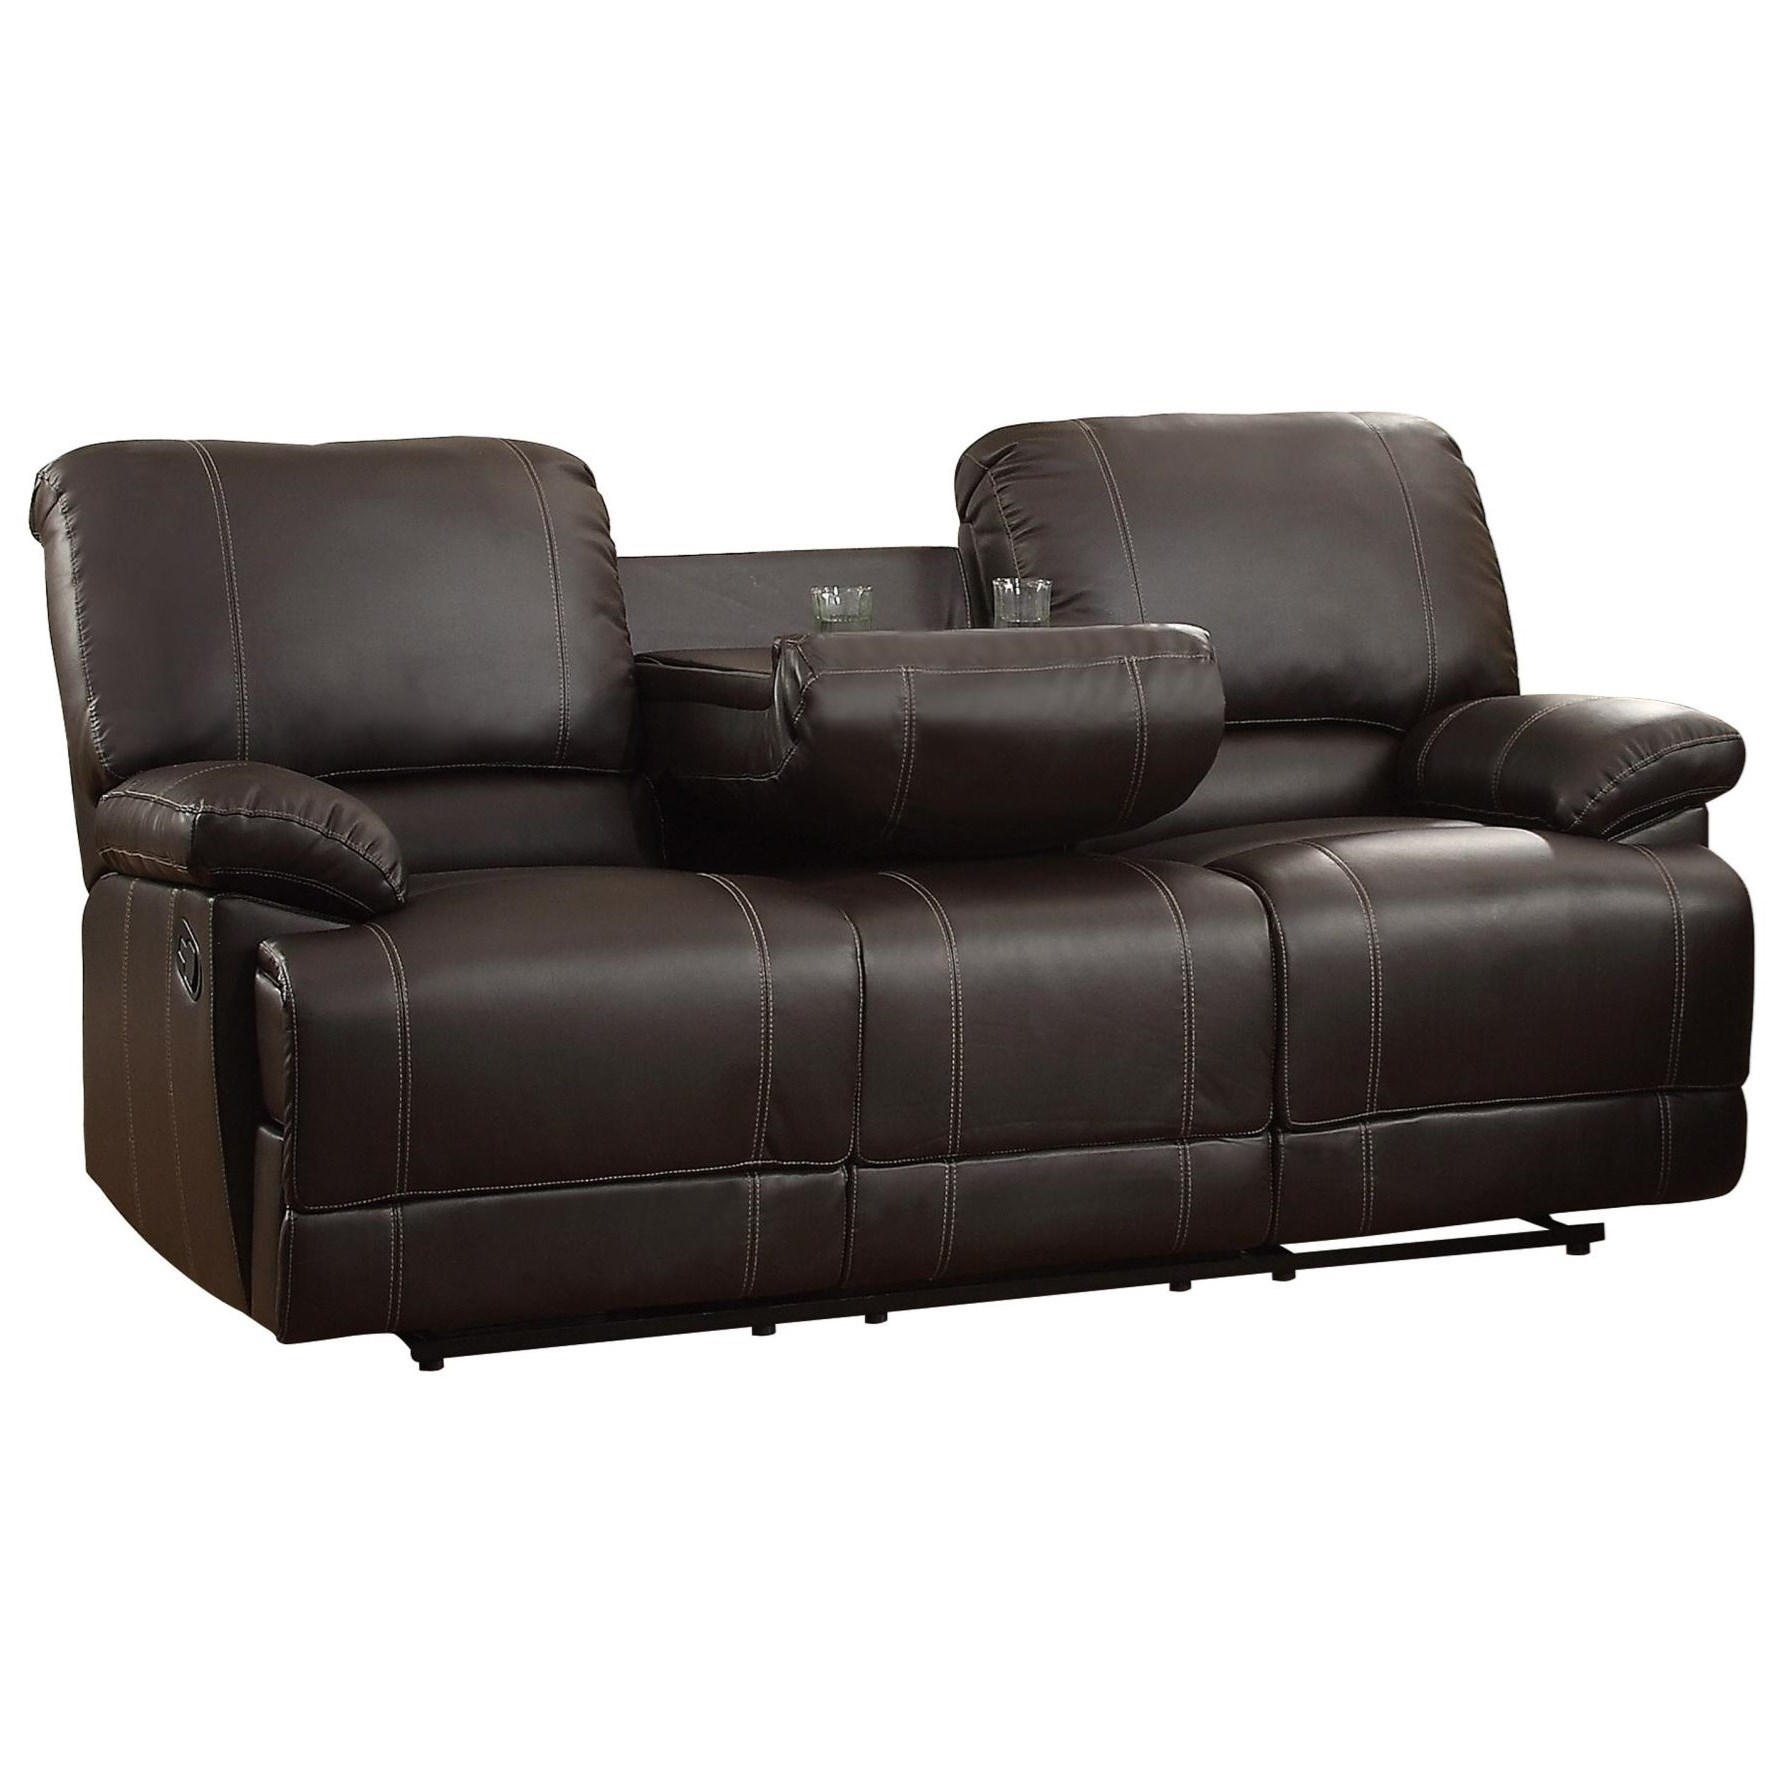 Homelegance Cassville Double Reclining Sofa With Drop Down